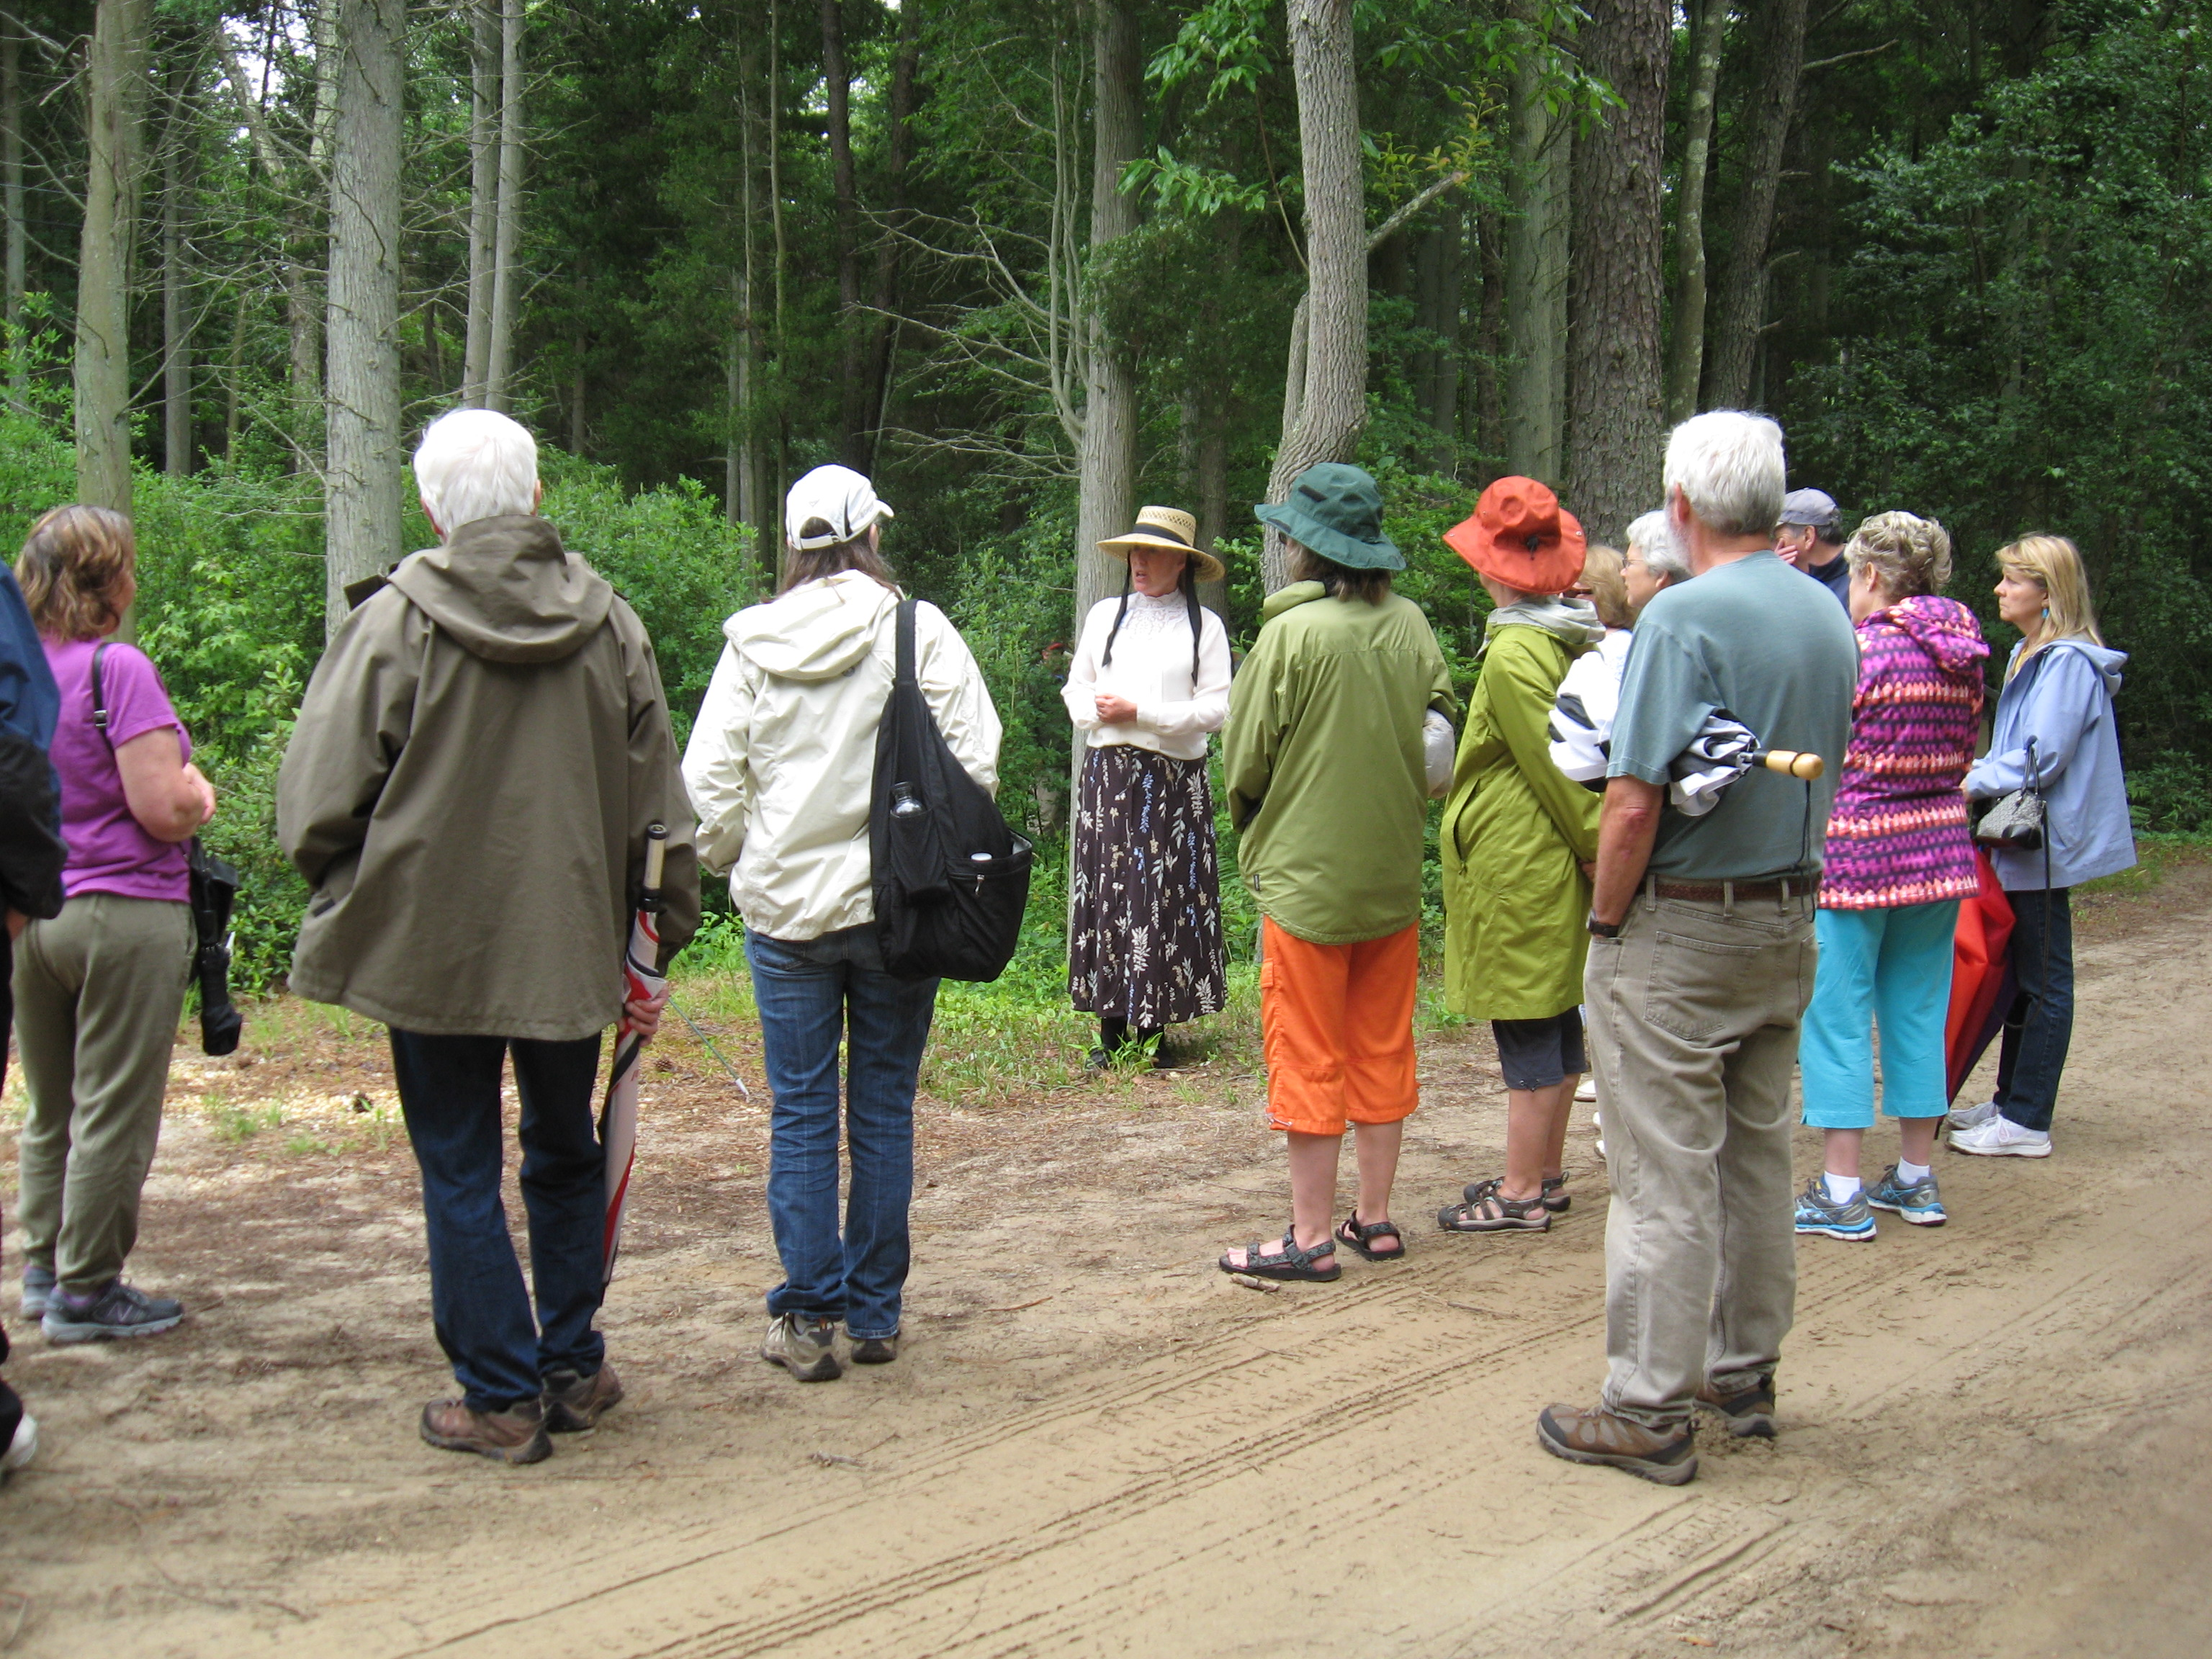 Tour groups and field trips can be scheduled through the Trust office or by email at WhitesbogPreservationTrust@gmail.com